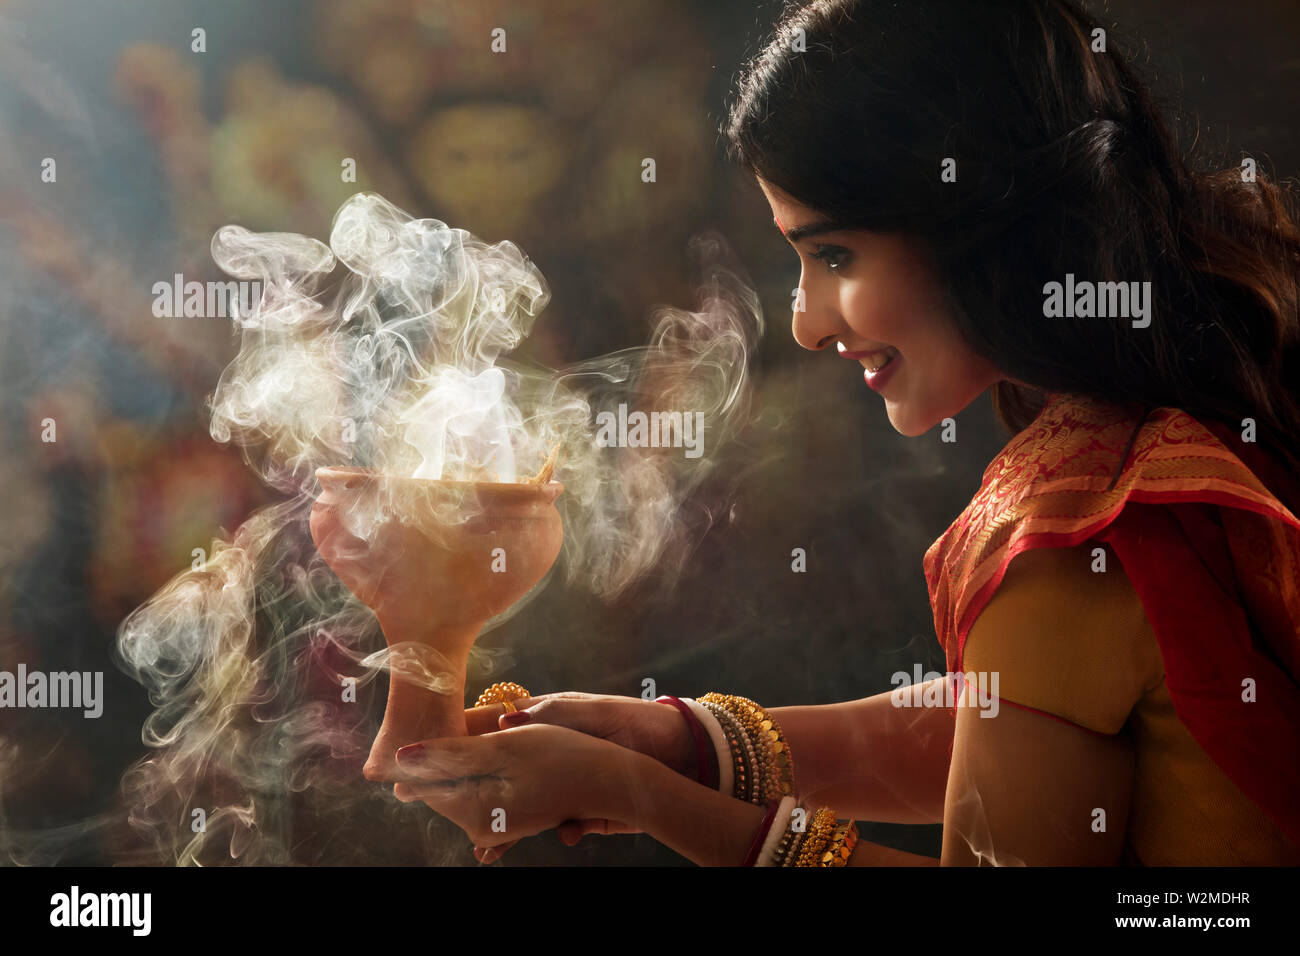 Bengali Married woman doing a Dhunuchi dance on the occasion of durga puja Stock Photo